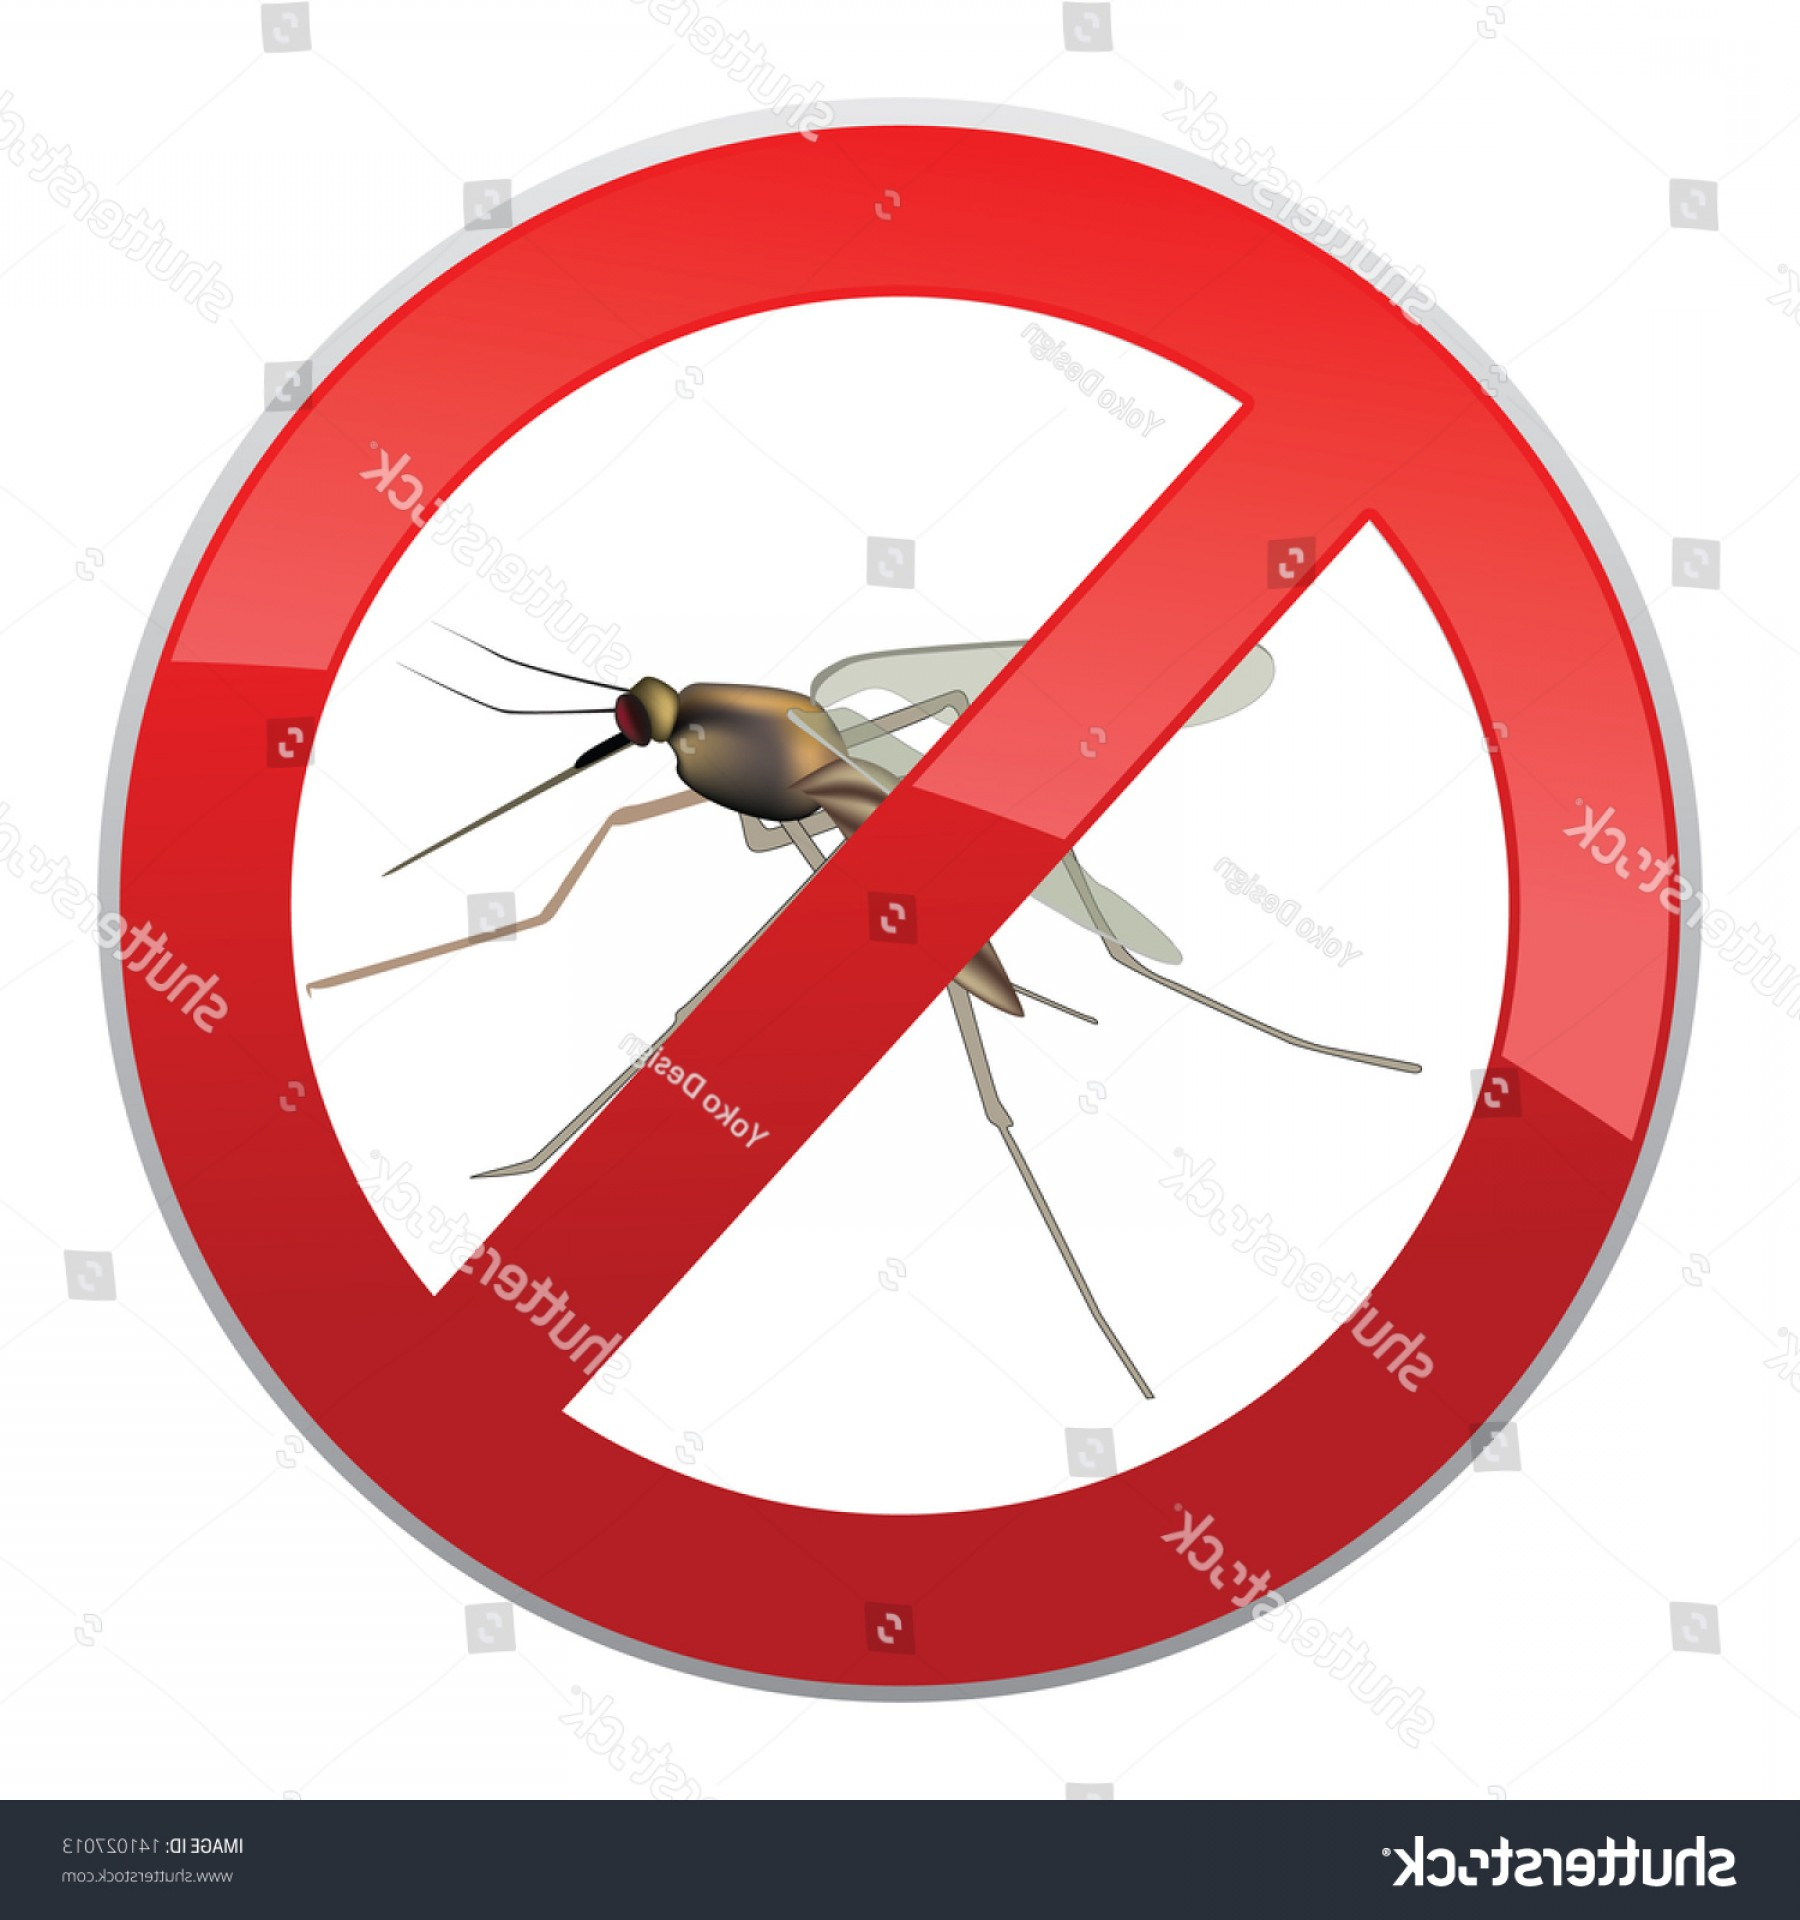 Vector Ban Plus Insecticide: Stop Mosquito Ban Symbol No Mosquitoes